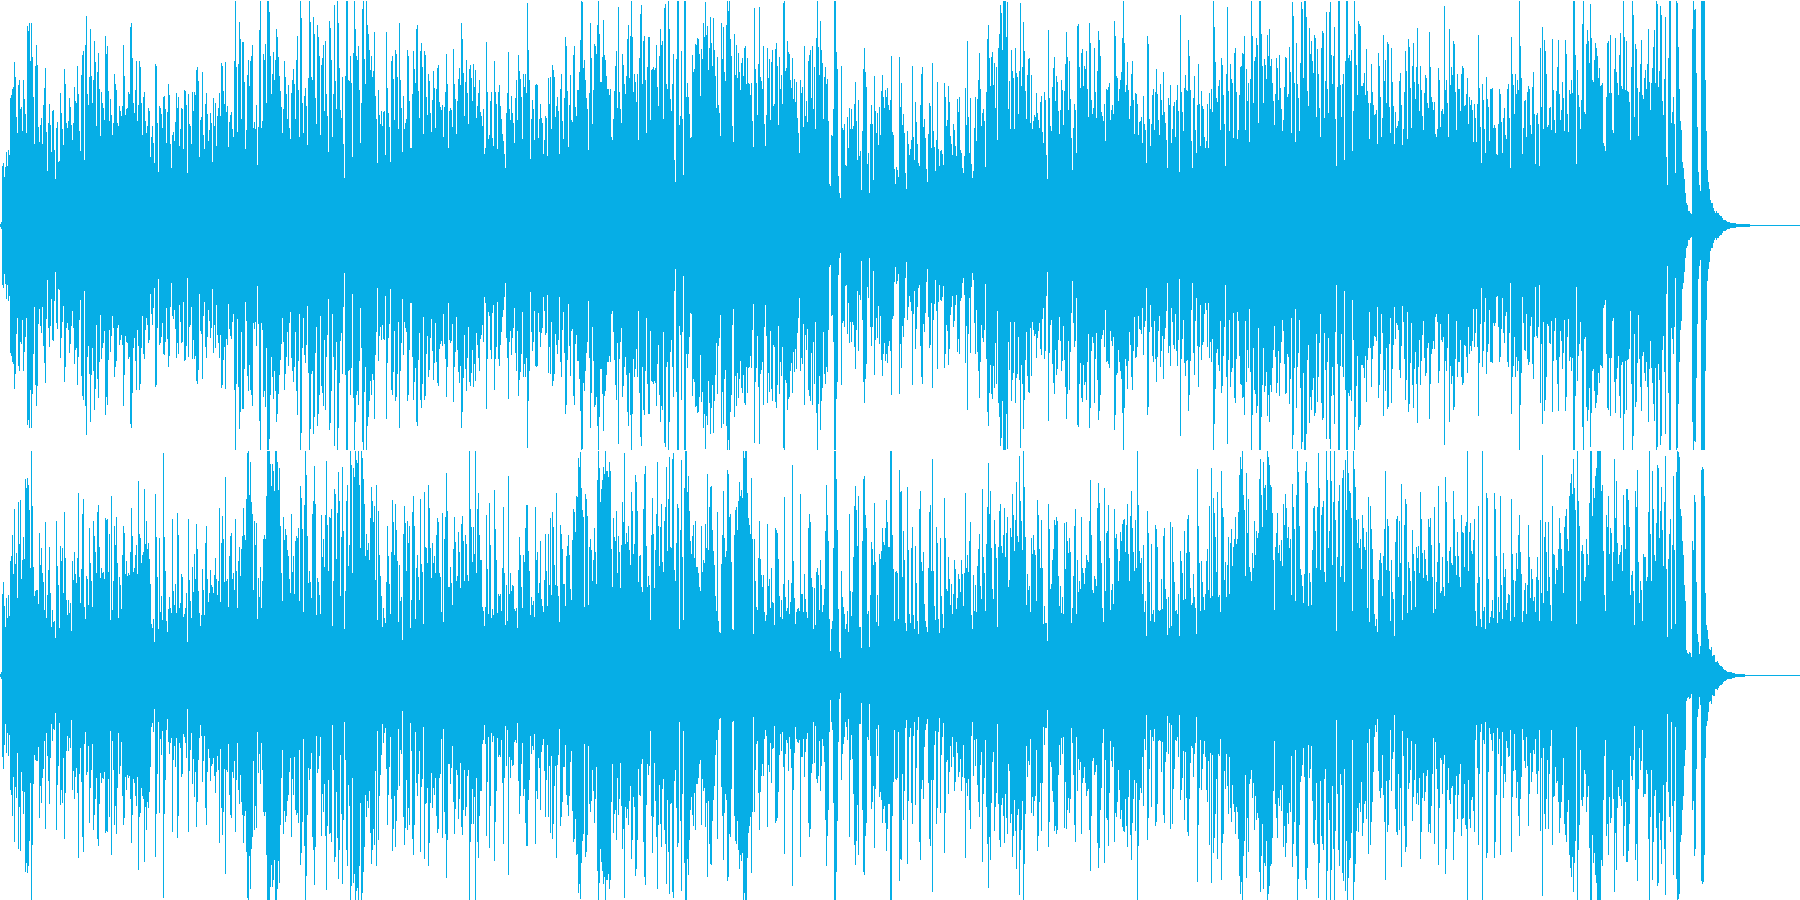 YouTube play accompanied by a little hero's reproduced waveform